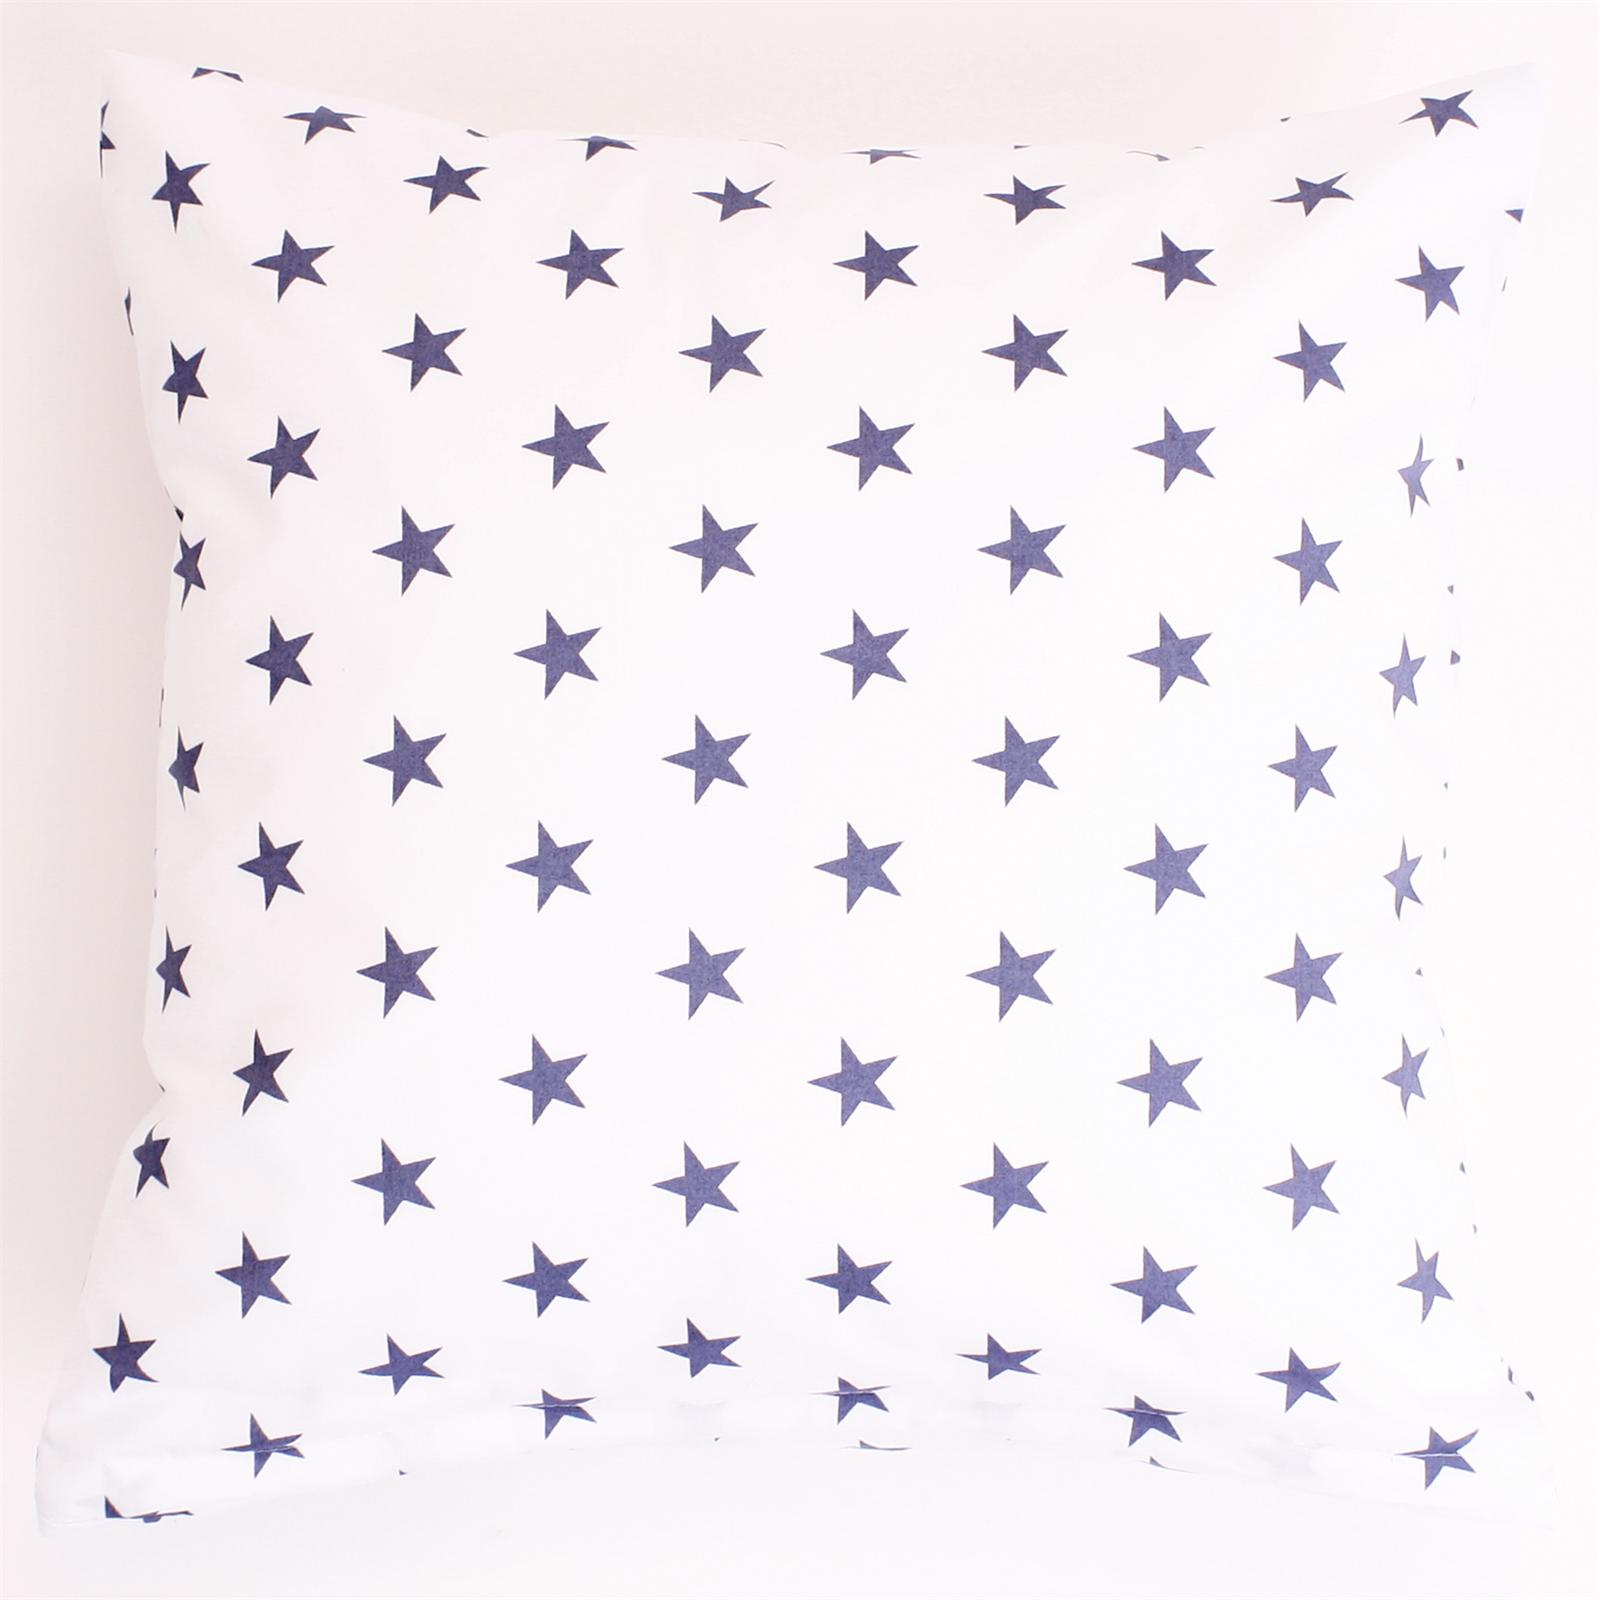 Taie d 39 oreiller 30x30 cm toiles bw rv coussin housse for Fenetre 30x30